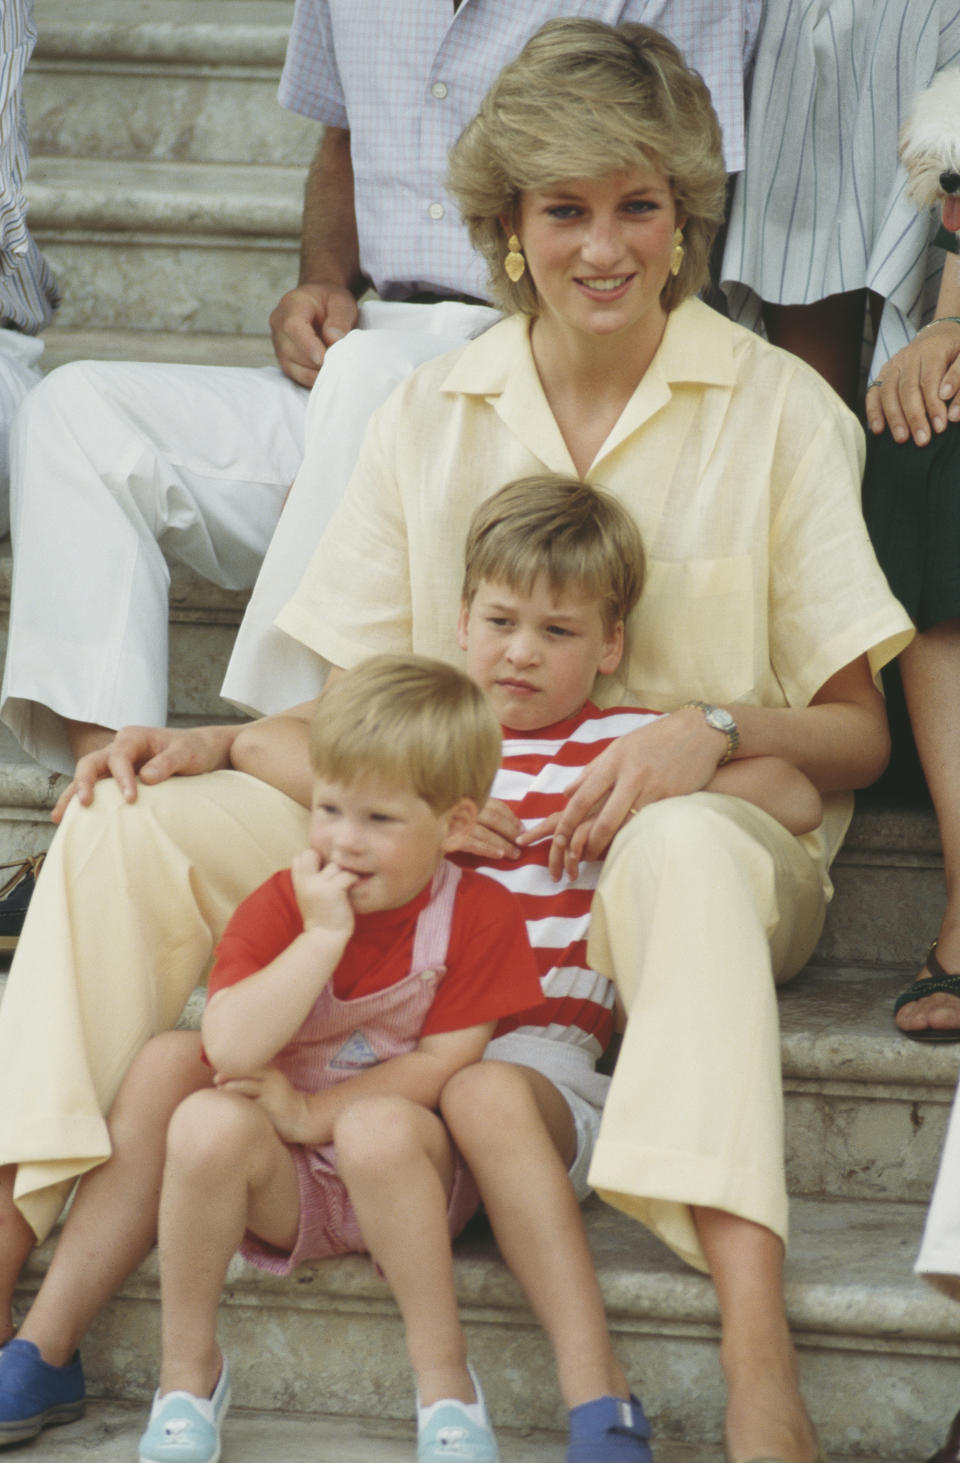 Diana, Princess of Wales (1961 - 1997) with her sons William and Harry during a holiday with the Spanish royal family at the Marivent Palace in Palma de Mallorca, Spain, August 1987. (Photo by Terry Fincher/Princess Diana Archive/Getty Images)